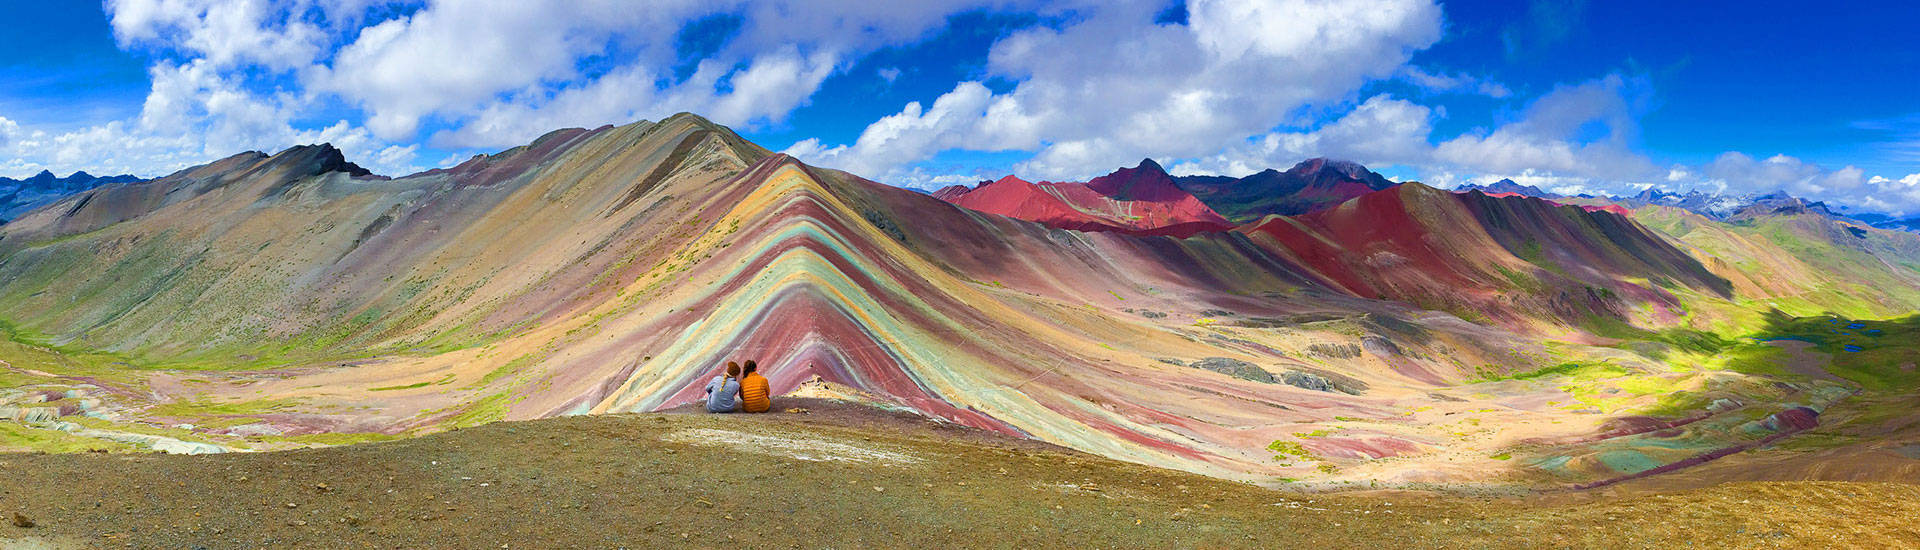 Rainbow Mountain 01 Day Tour